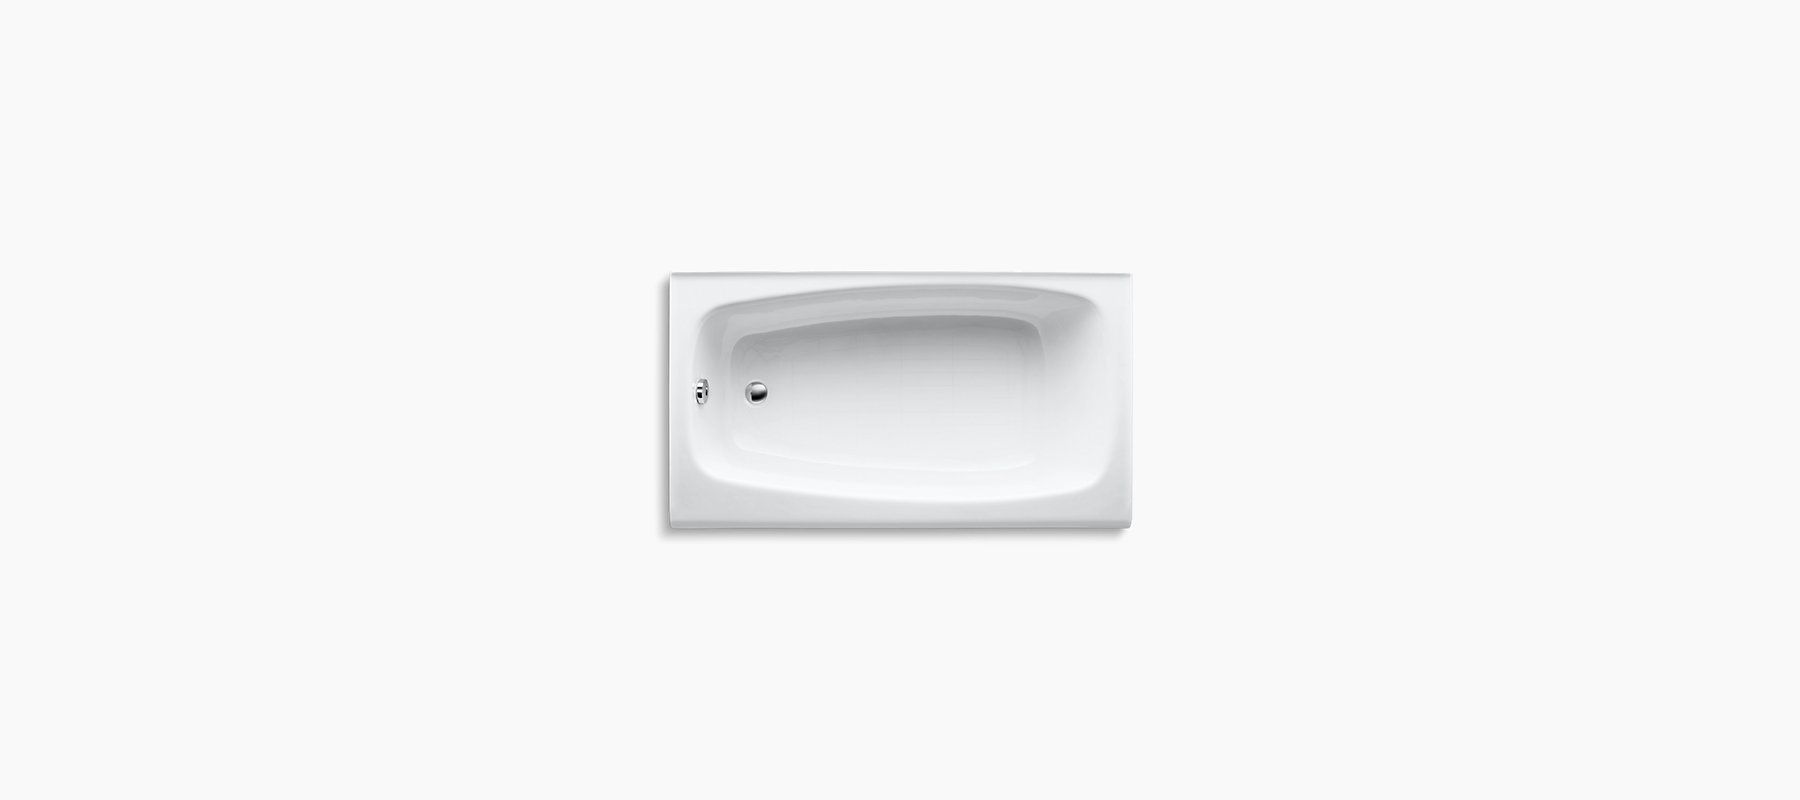 Seaforth 4.5 Foot Bath With Left Hand Drain | K 745 | KOHLER